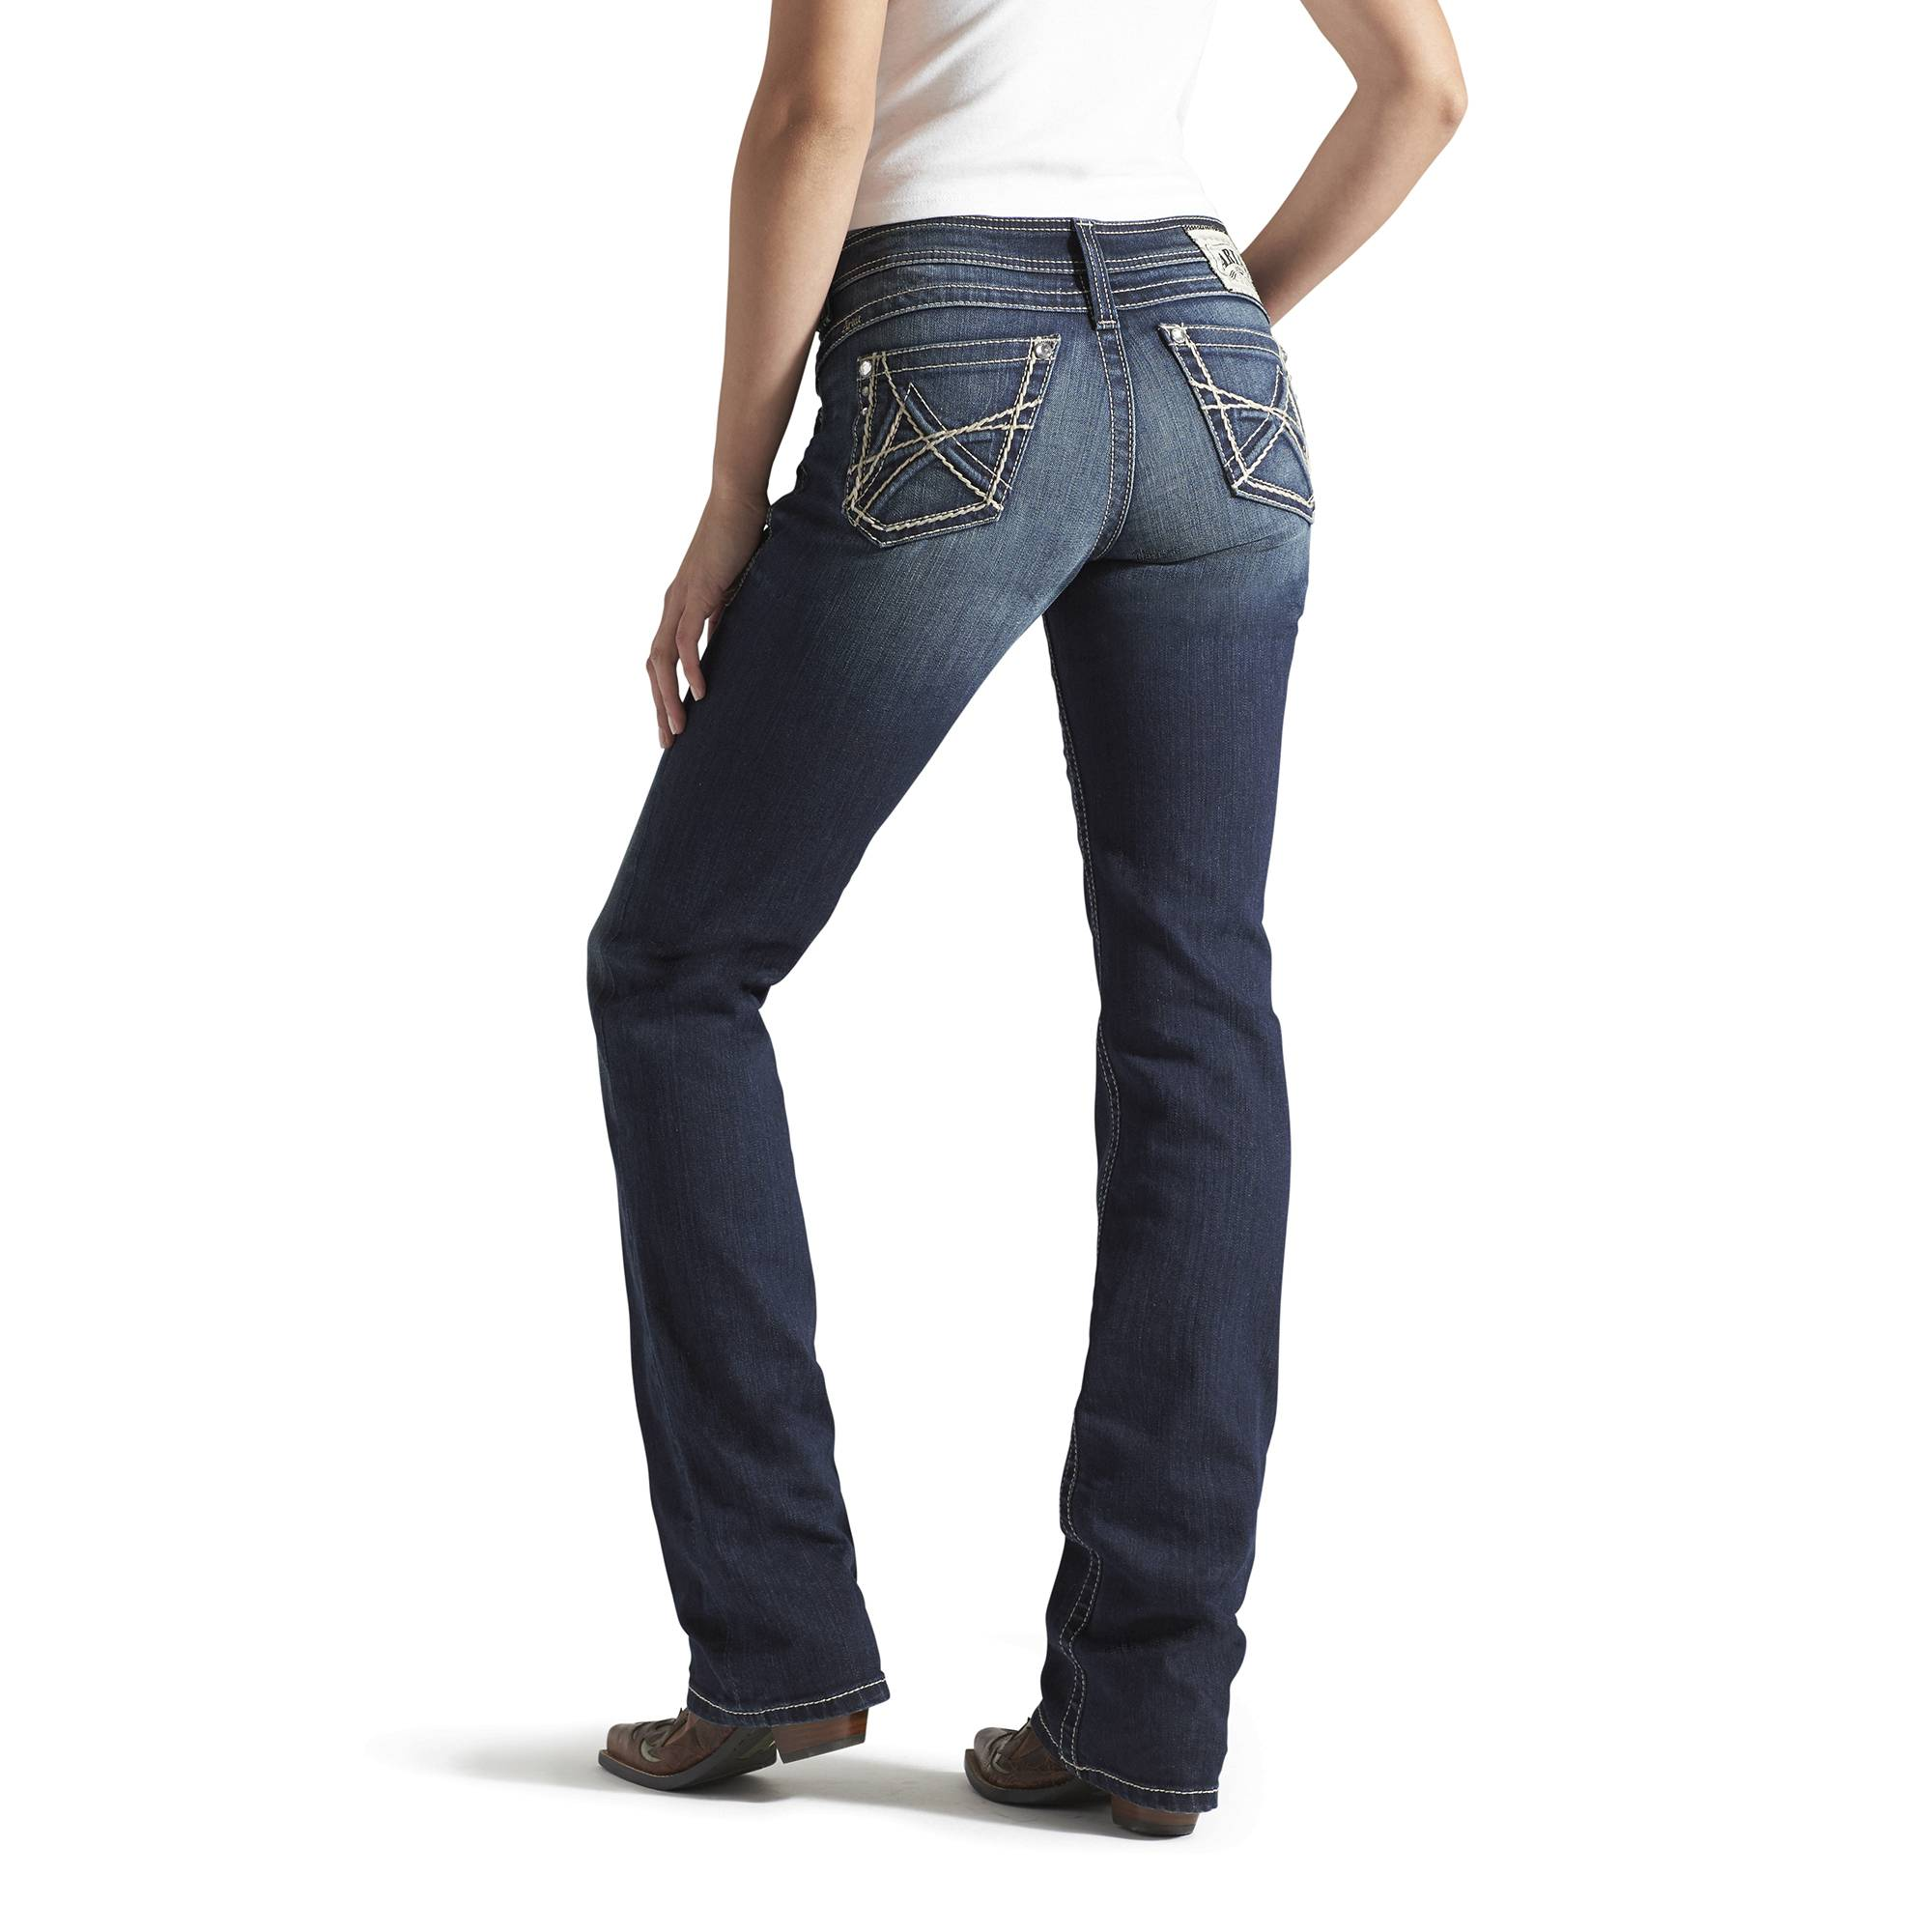 Ariat Amber 3D A Denim Jeans - Ladies, Loveless